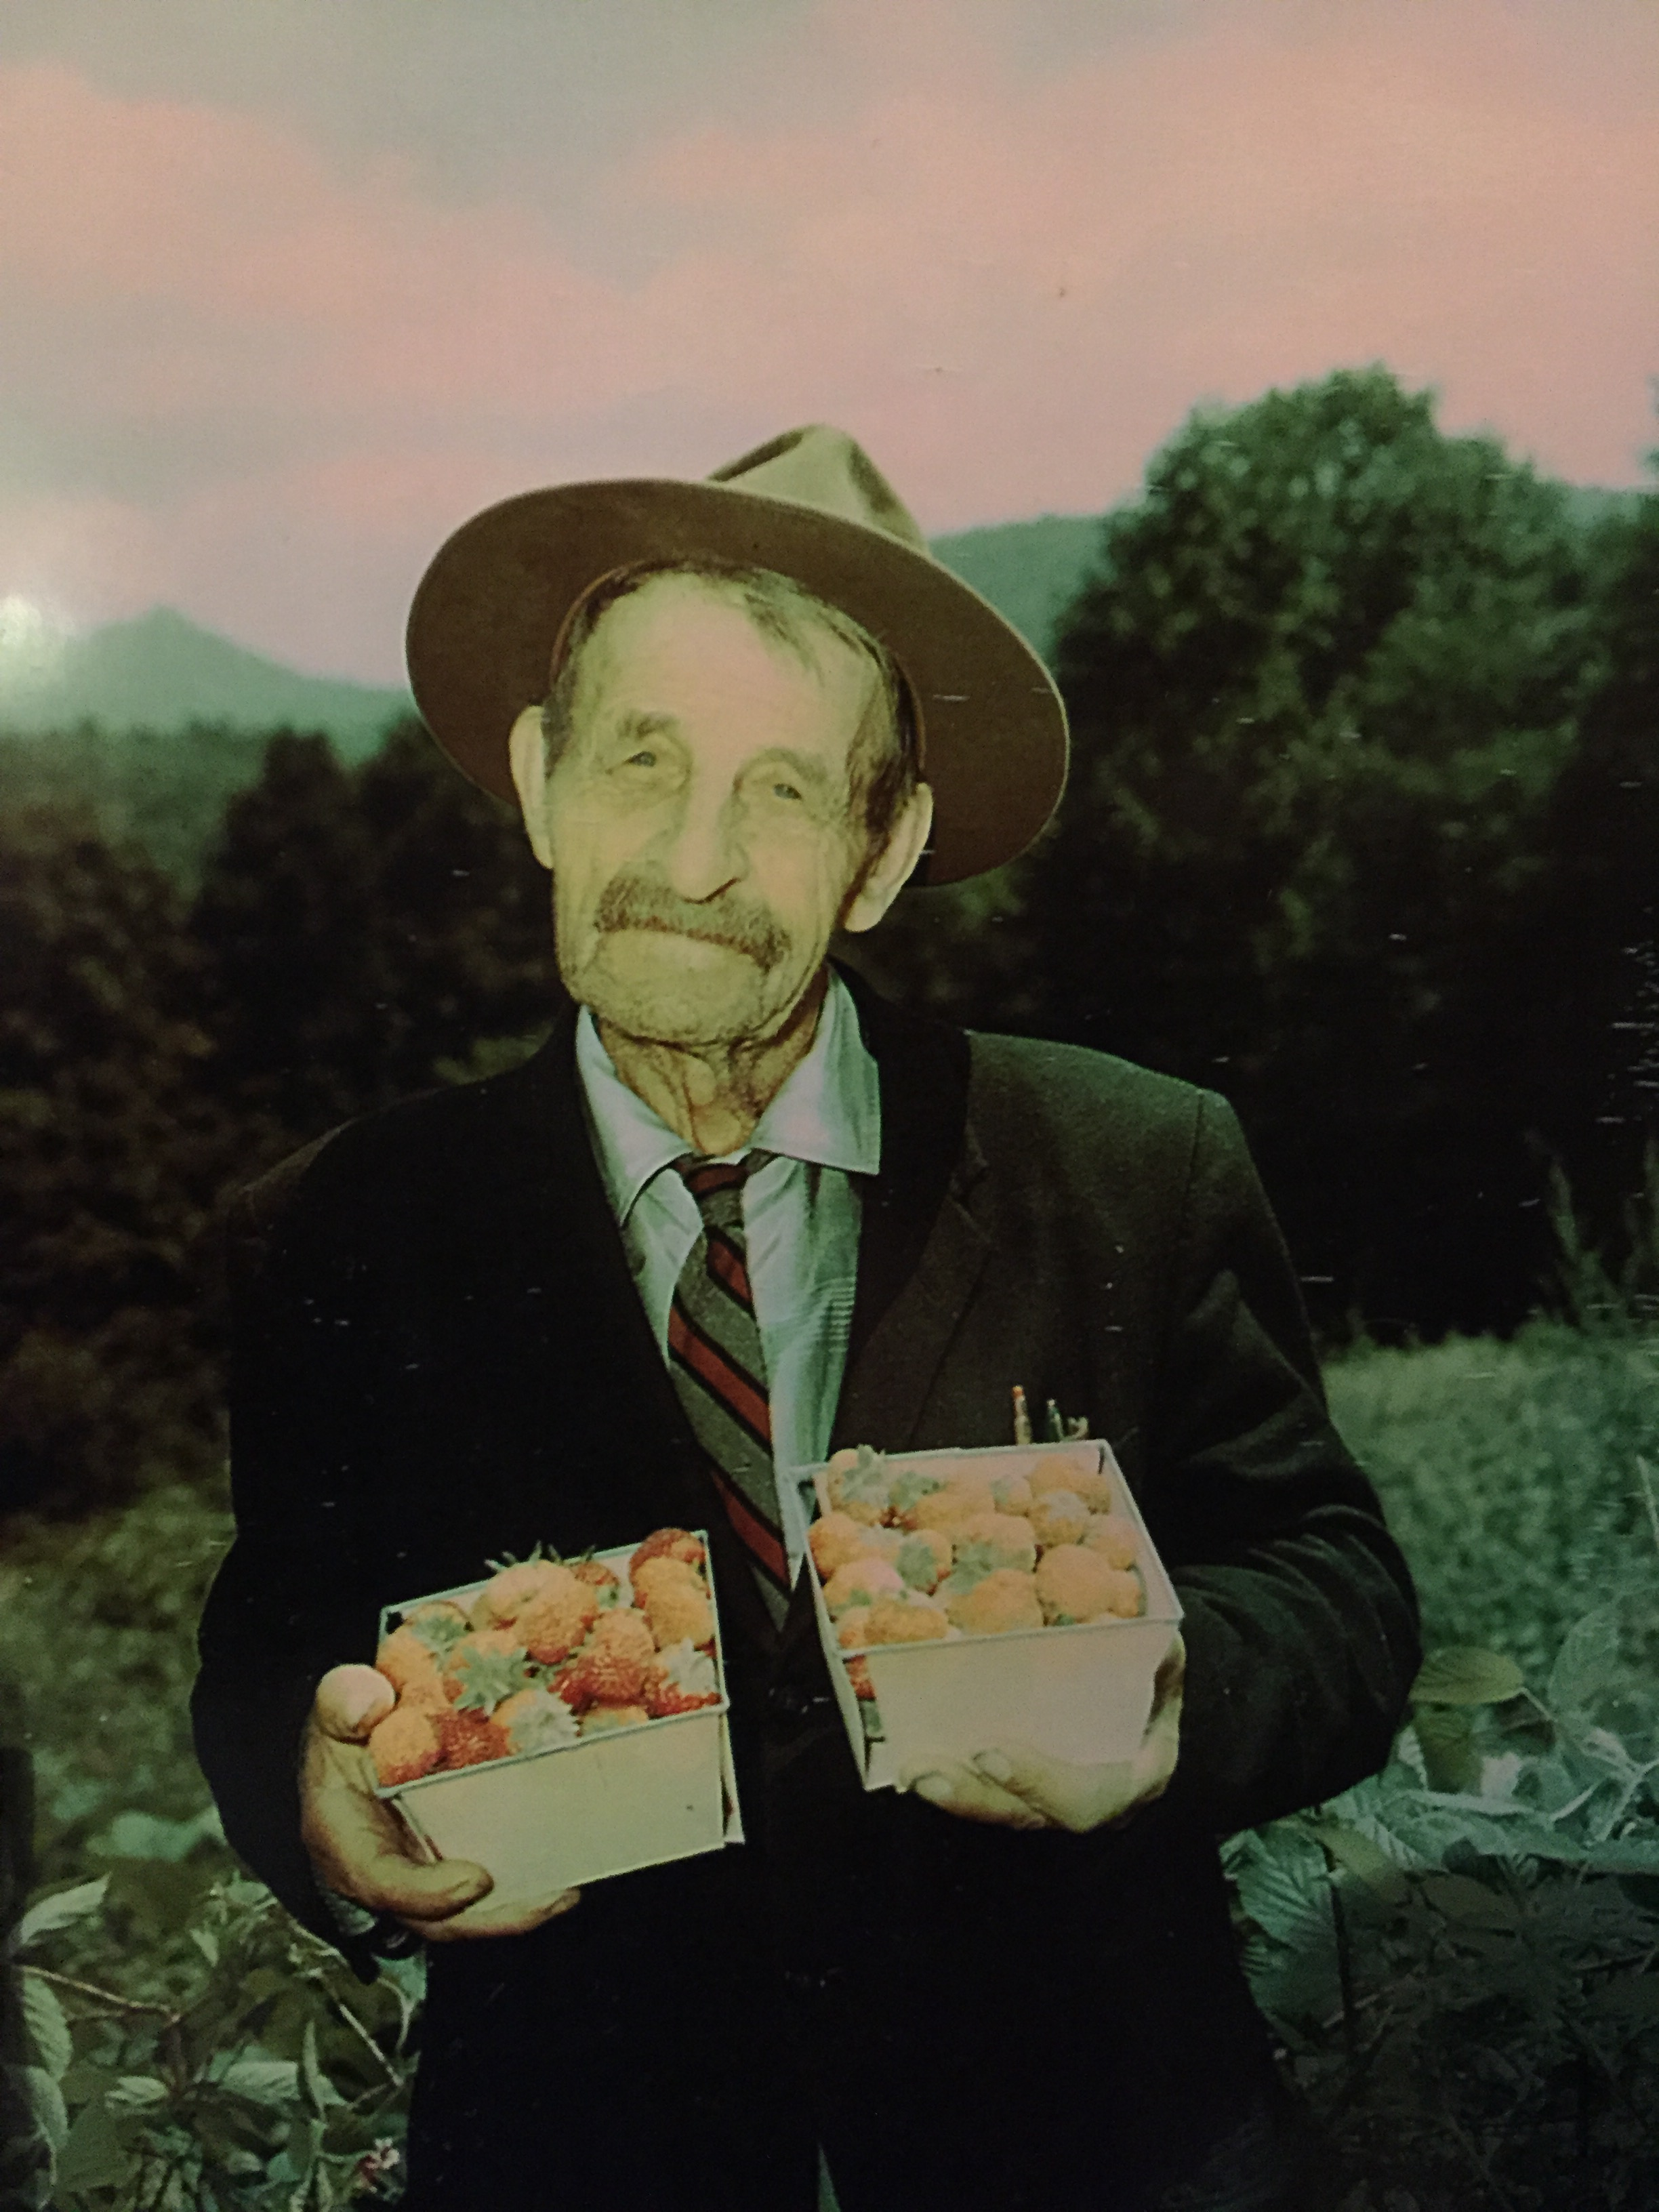 Joe Larkin Hartley with his prize-winning strawberries. Photo by Hugh Morton, found in the Hugh Morton Photographs and Films #P0081, copyright 1950s, North Carolina Collection, University of North Carolina at Chapel Hill Library.